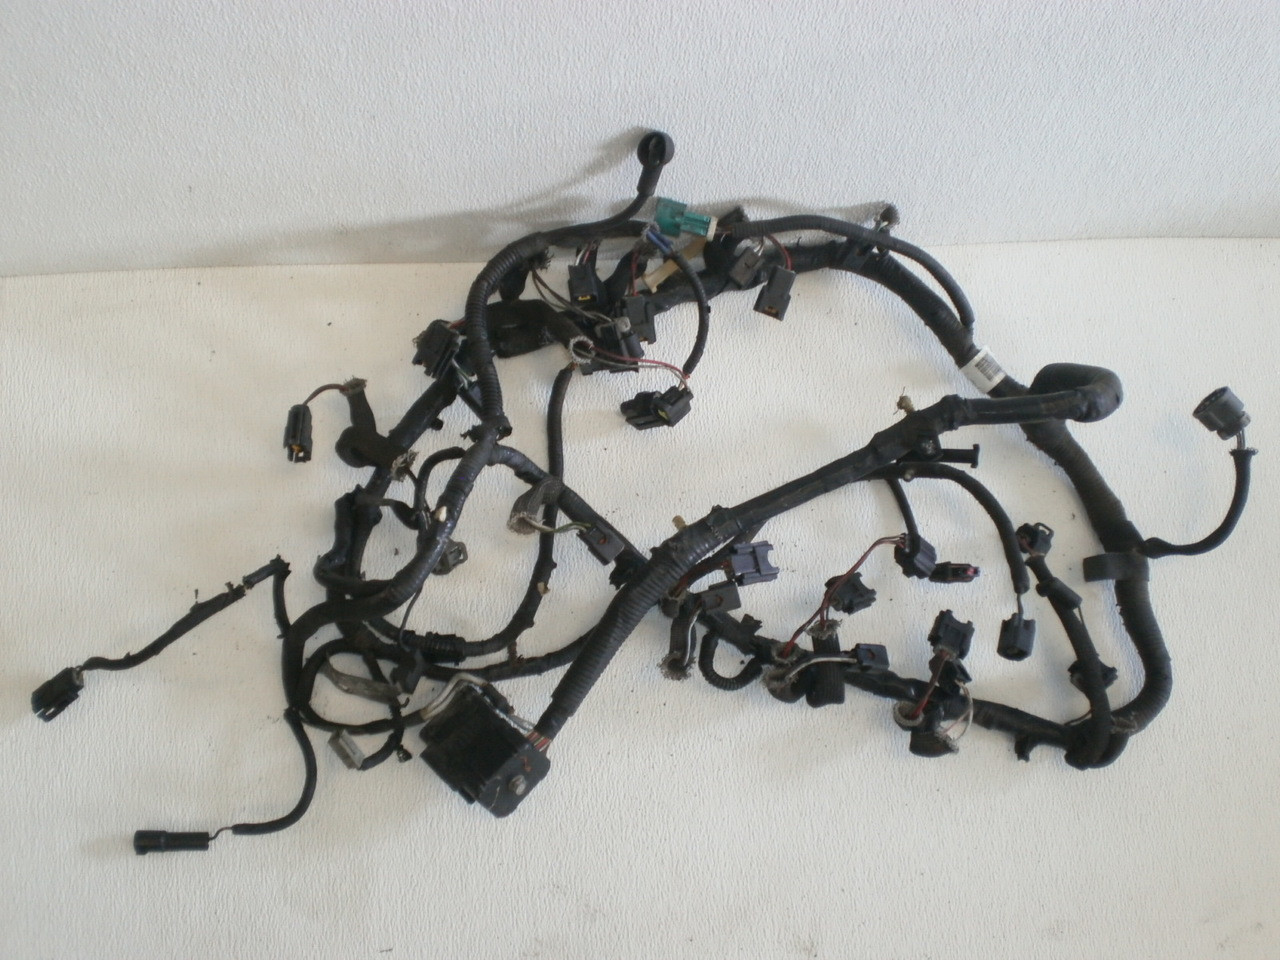 medium resolution of 1999 2001 ford mustang 4 6 sohc engine fuel injection wire harness loom xr33 9d930 larger more photos